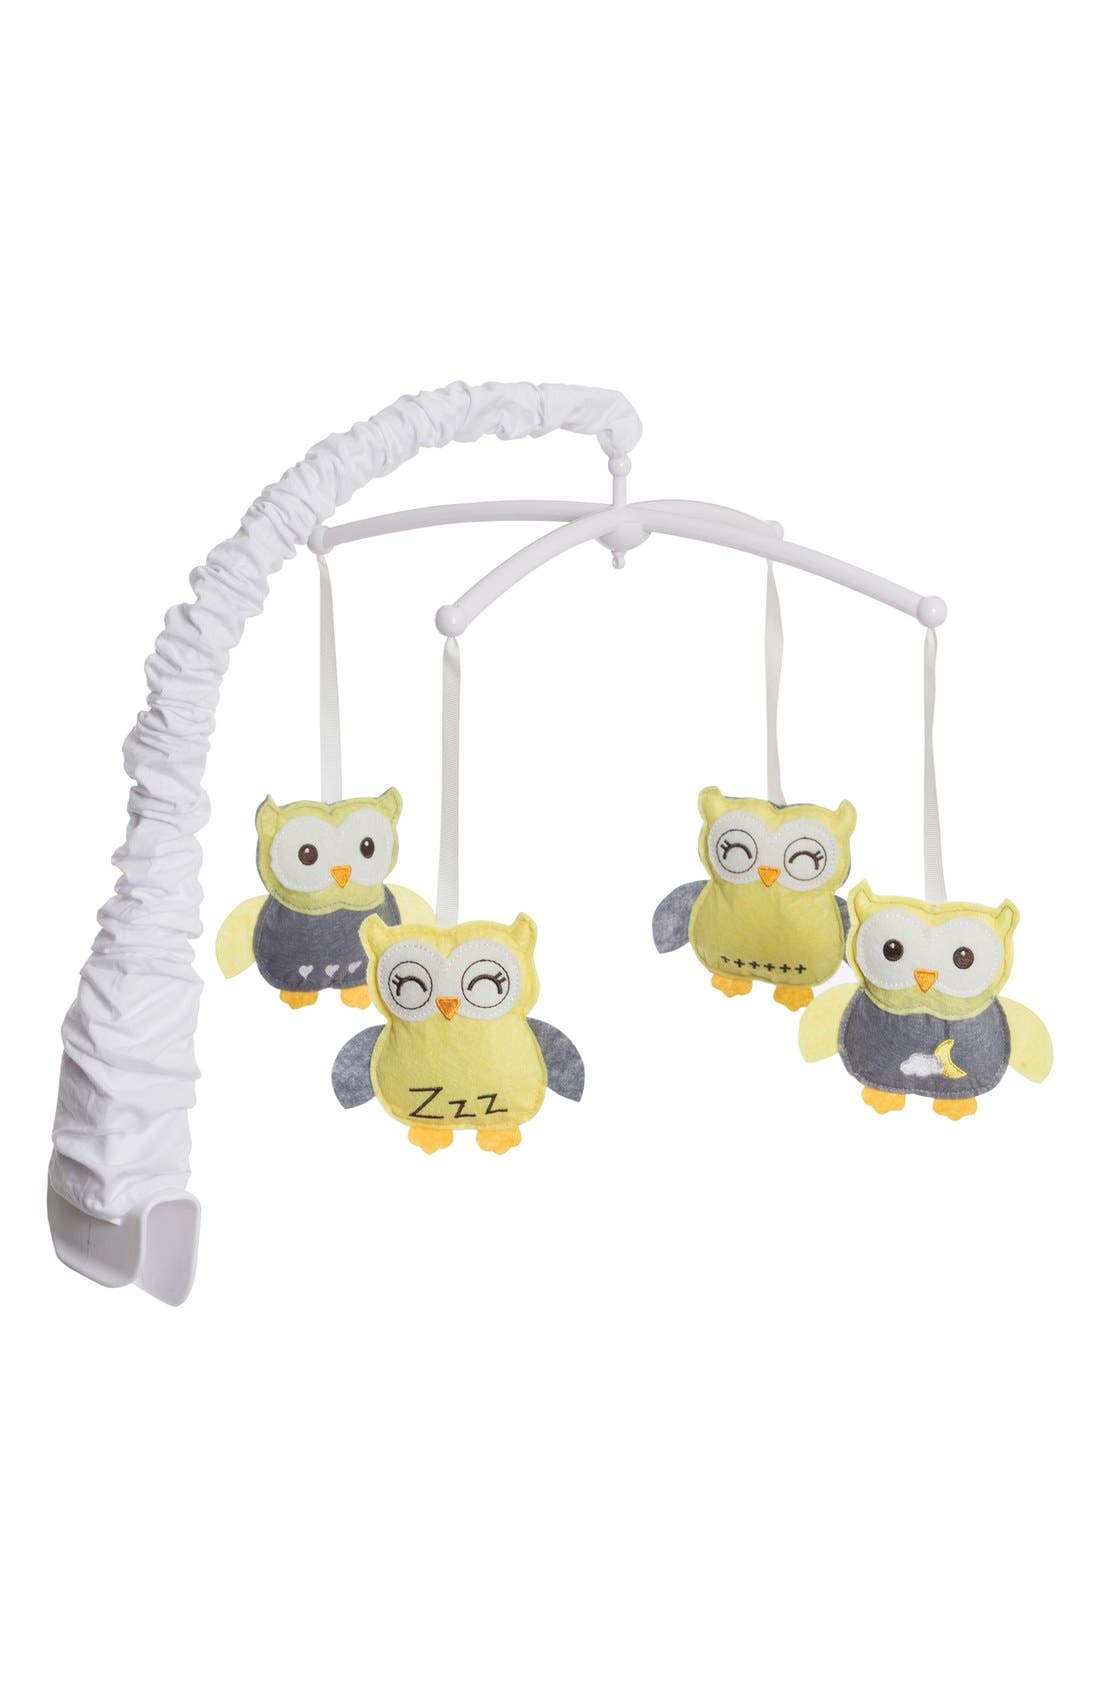 'Sleepy Owl' Mobile,                             Main thumbnail 1, color,                             YELLOW